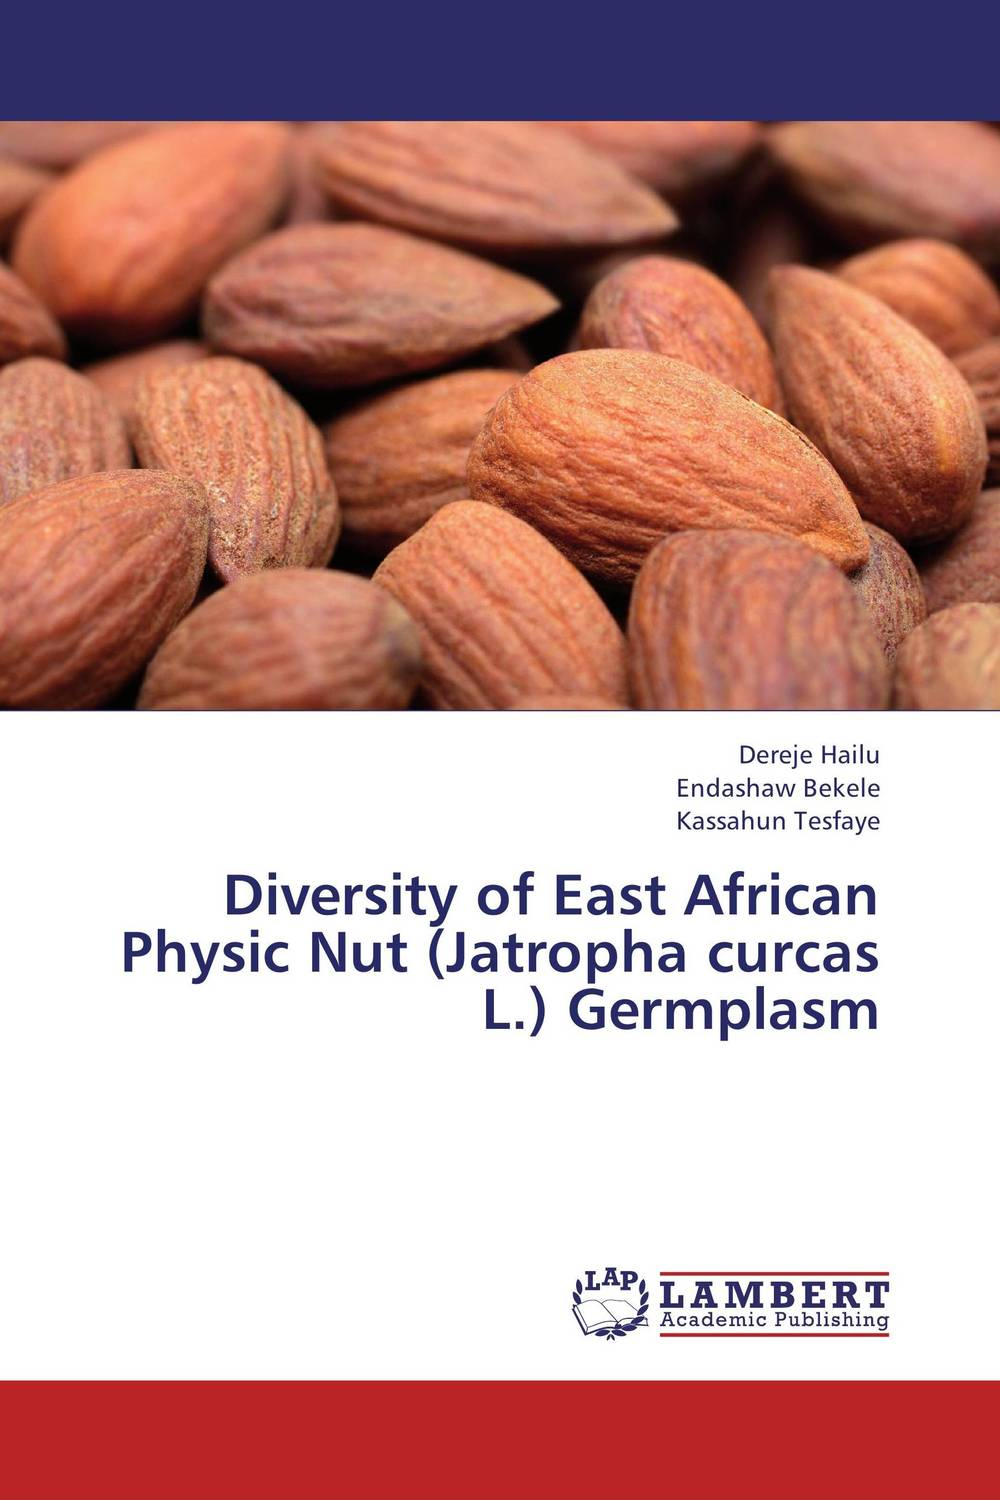 Diversity of East African Physic Nut (Jatropha curcas L.) Germplasm p b eregha energy consumption oil price and macroeconomic performance in energy dependent african countries